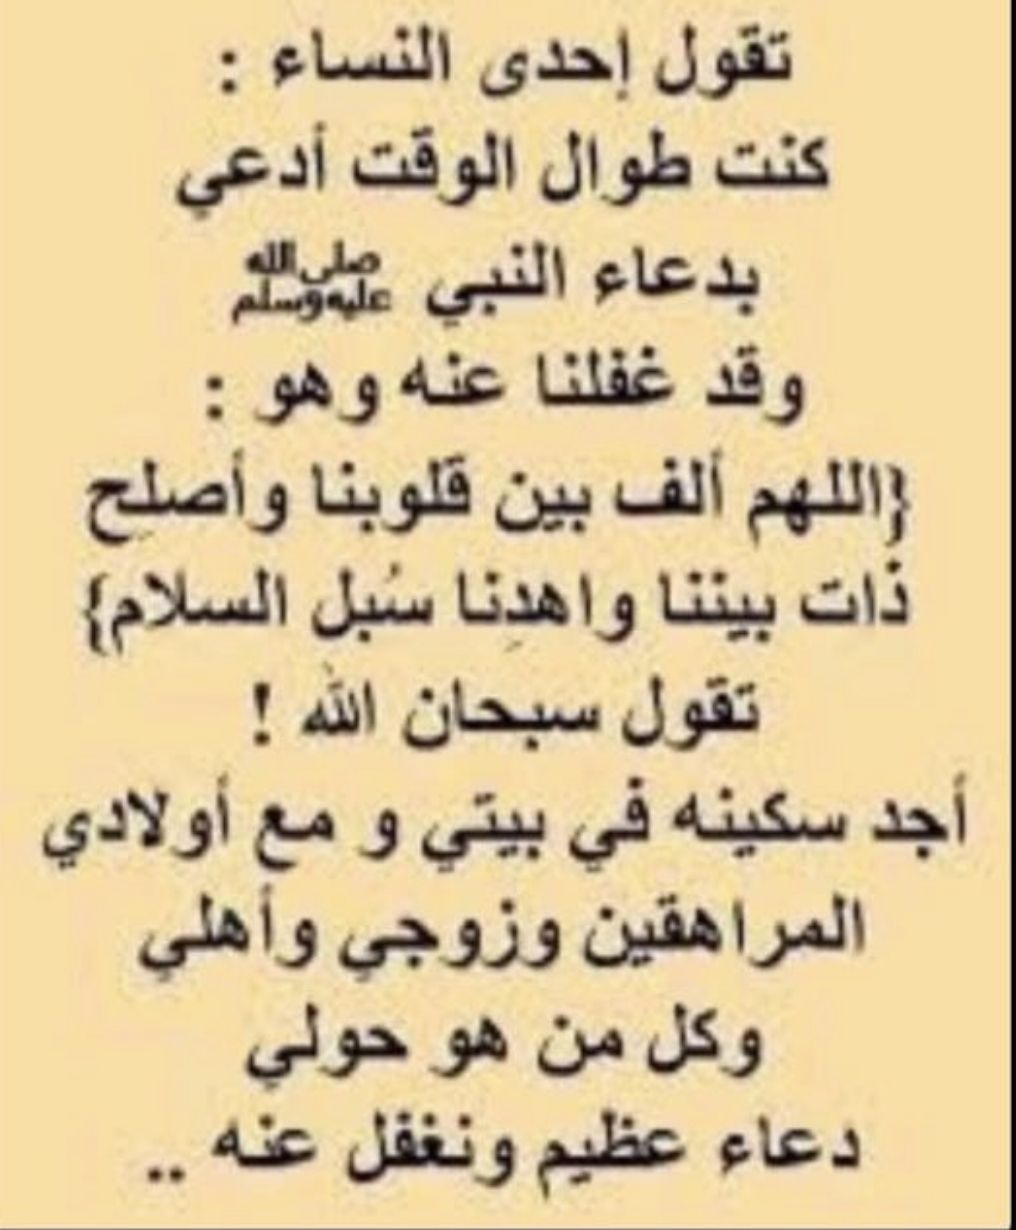 Pin By Rana Amro On اذكارات Good Thoughts Quotes Islamic Phrases Islamic Love Quotes